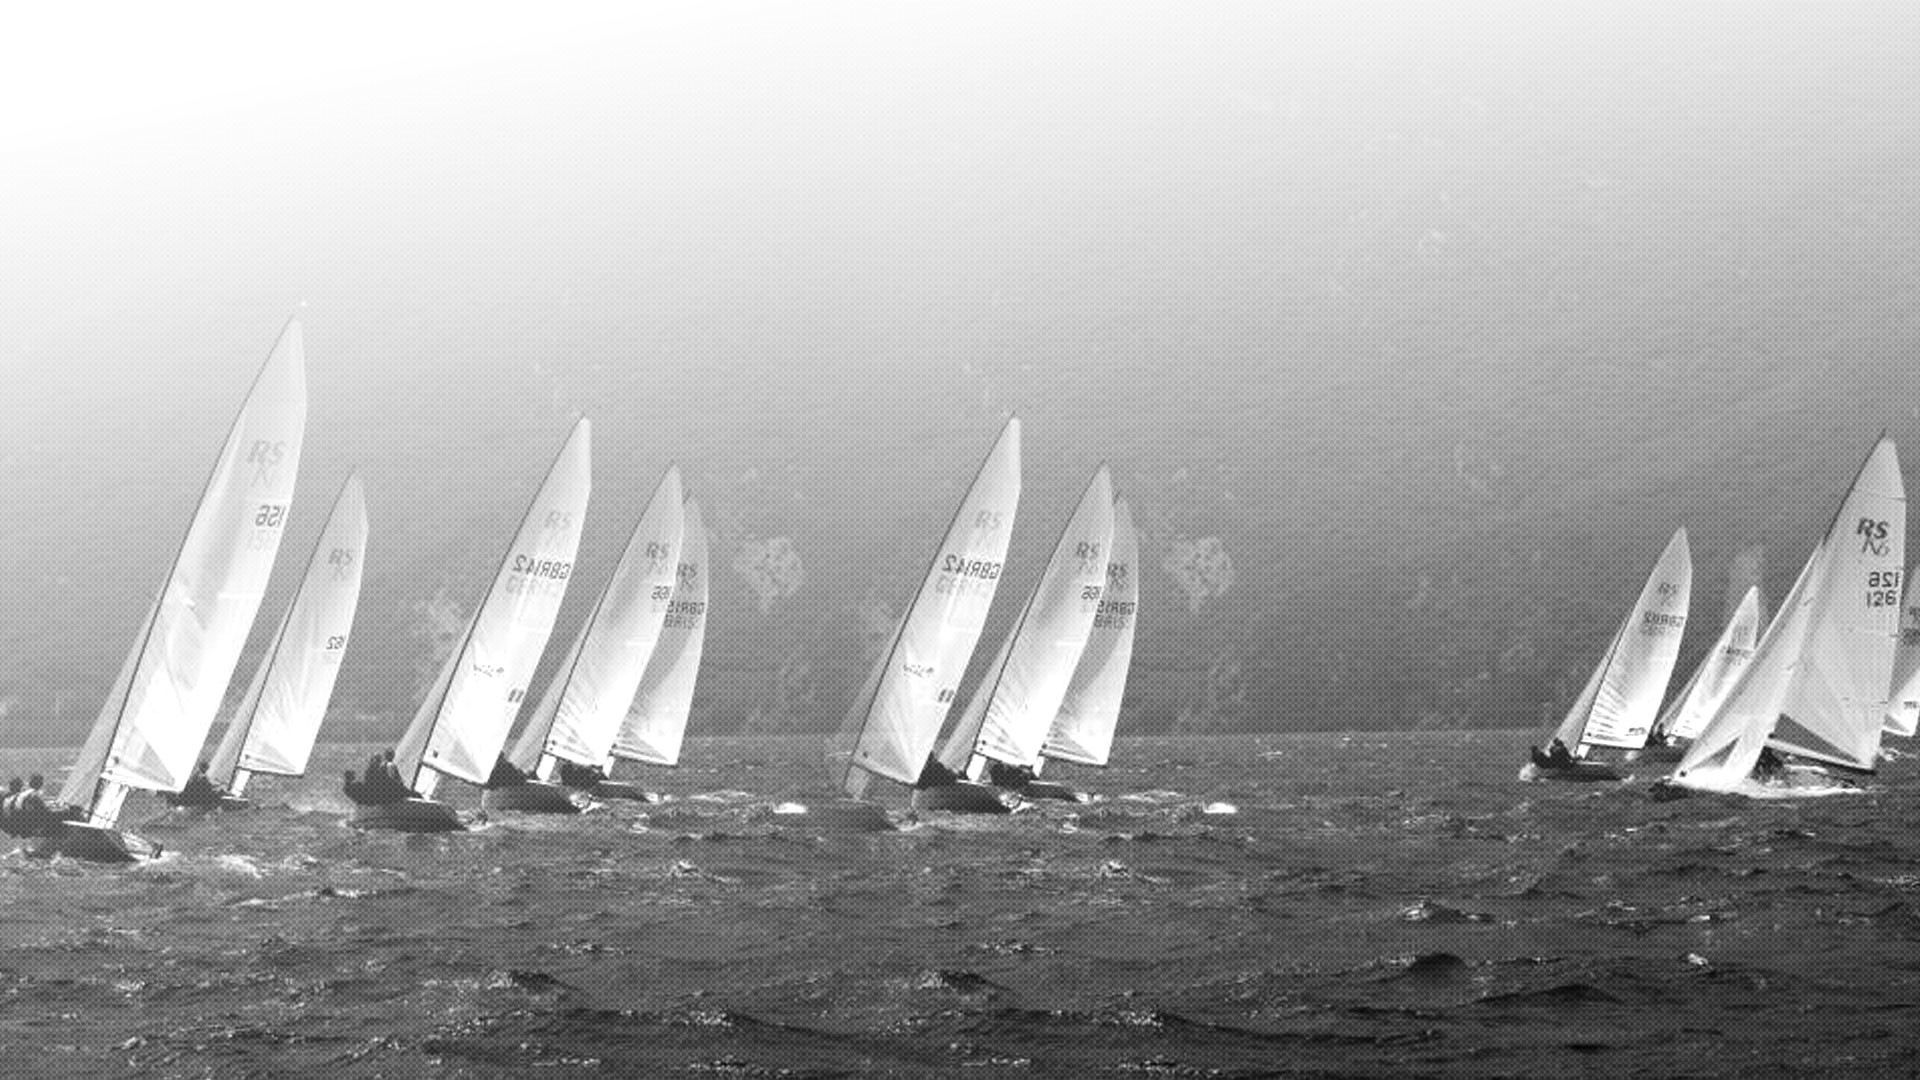 1920x1080 vintage sailing race black and white